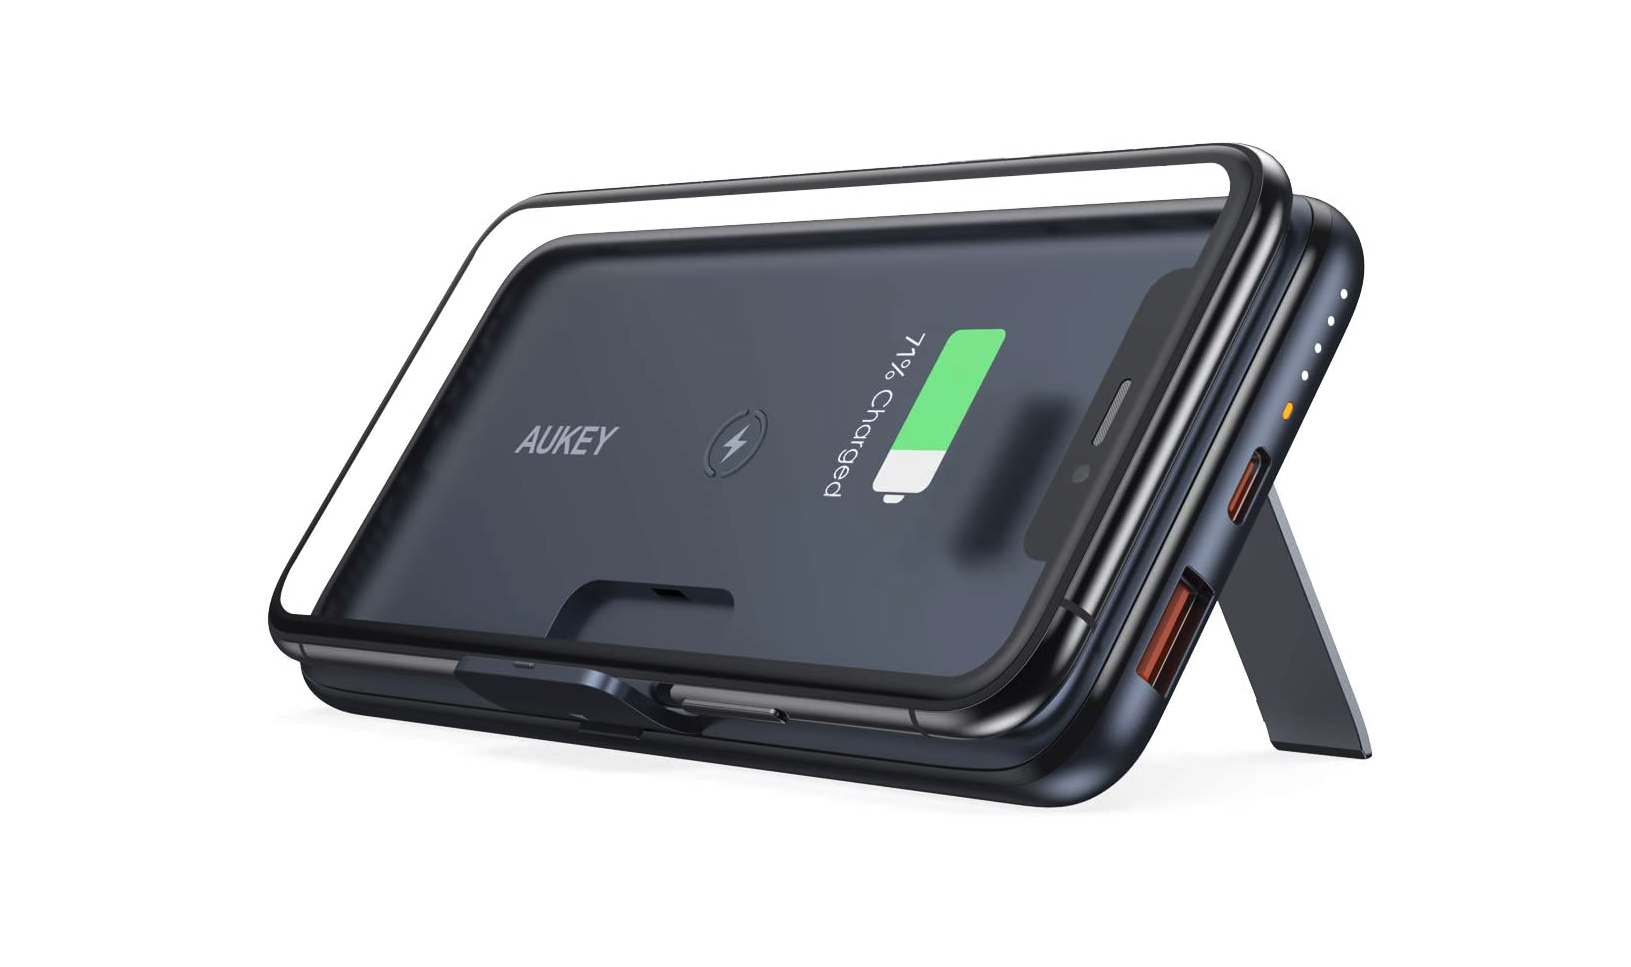 aukey-wireless-10000mah-portable-charger-with-foldable-stand.png